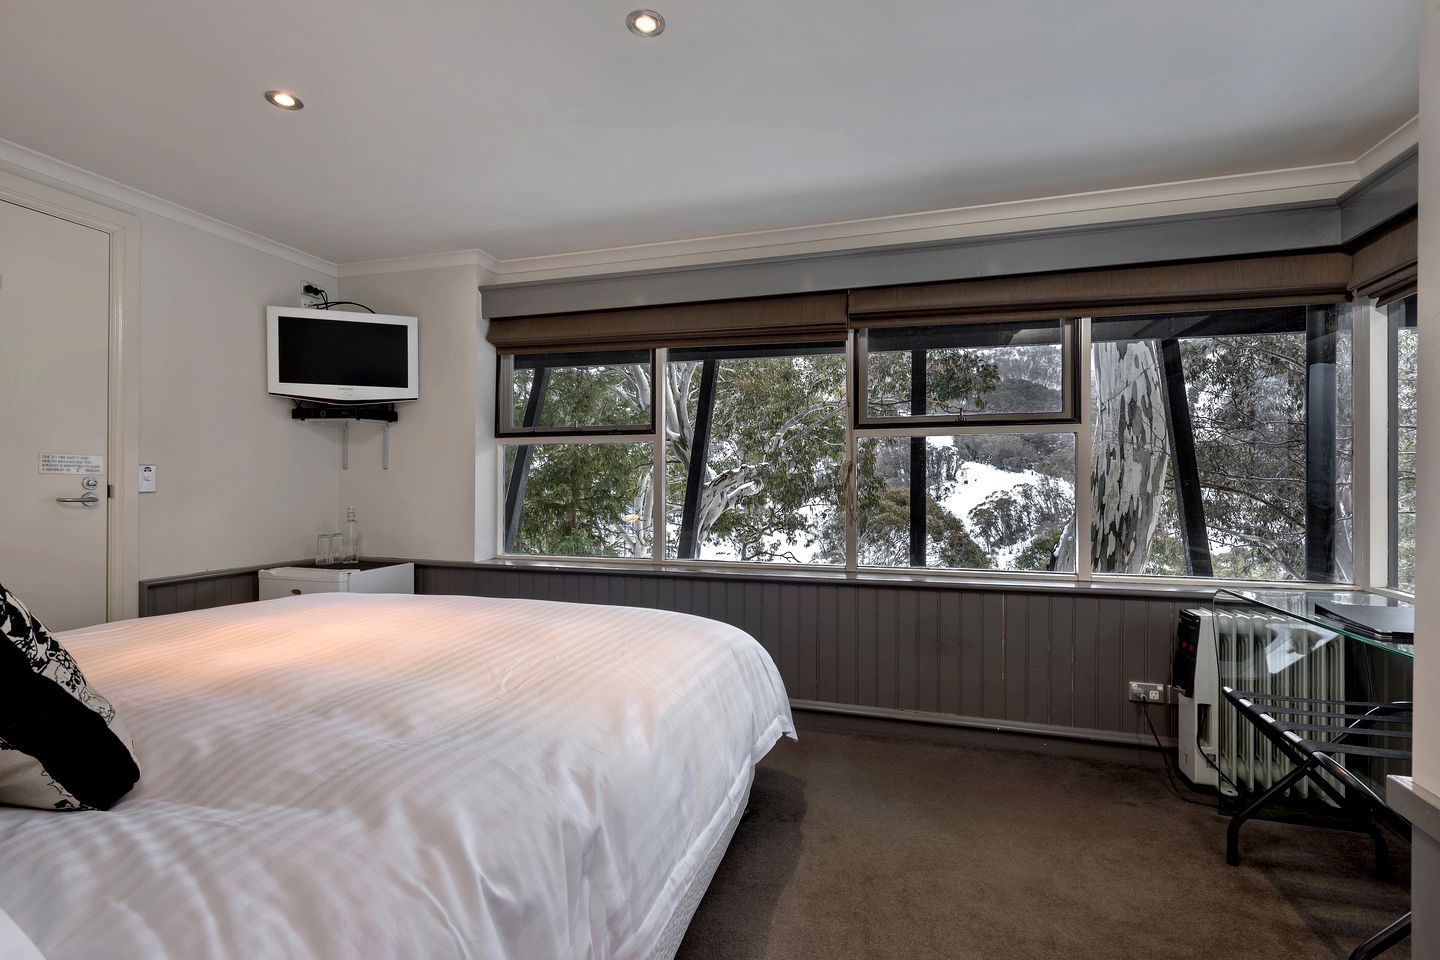 Cabins (Thredbo, New South Wales, Australia)